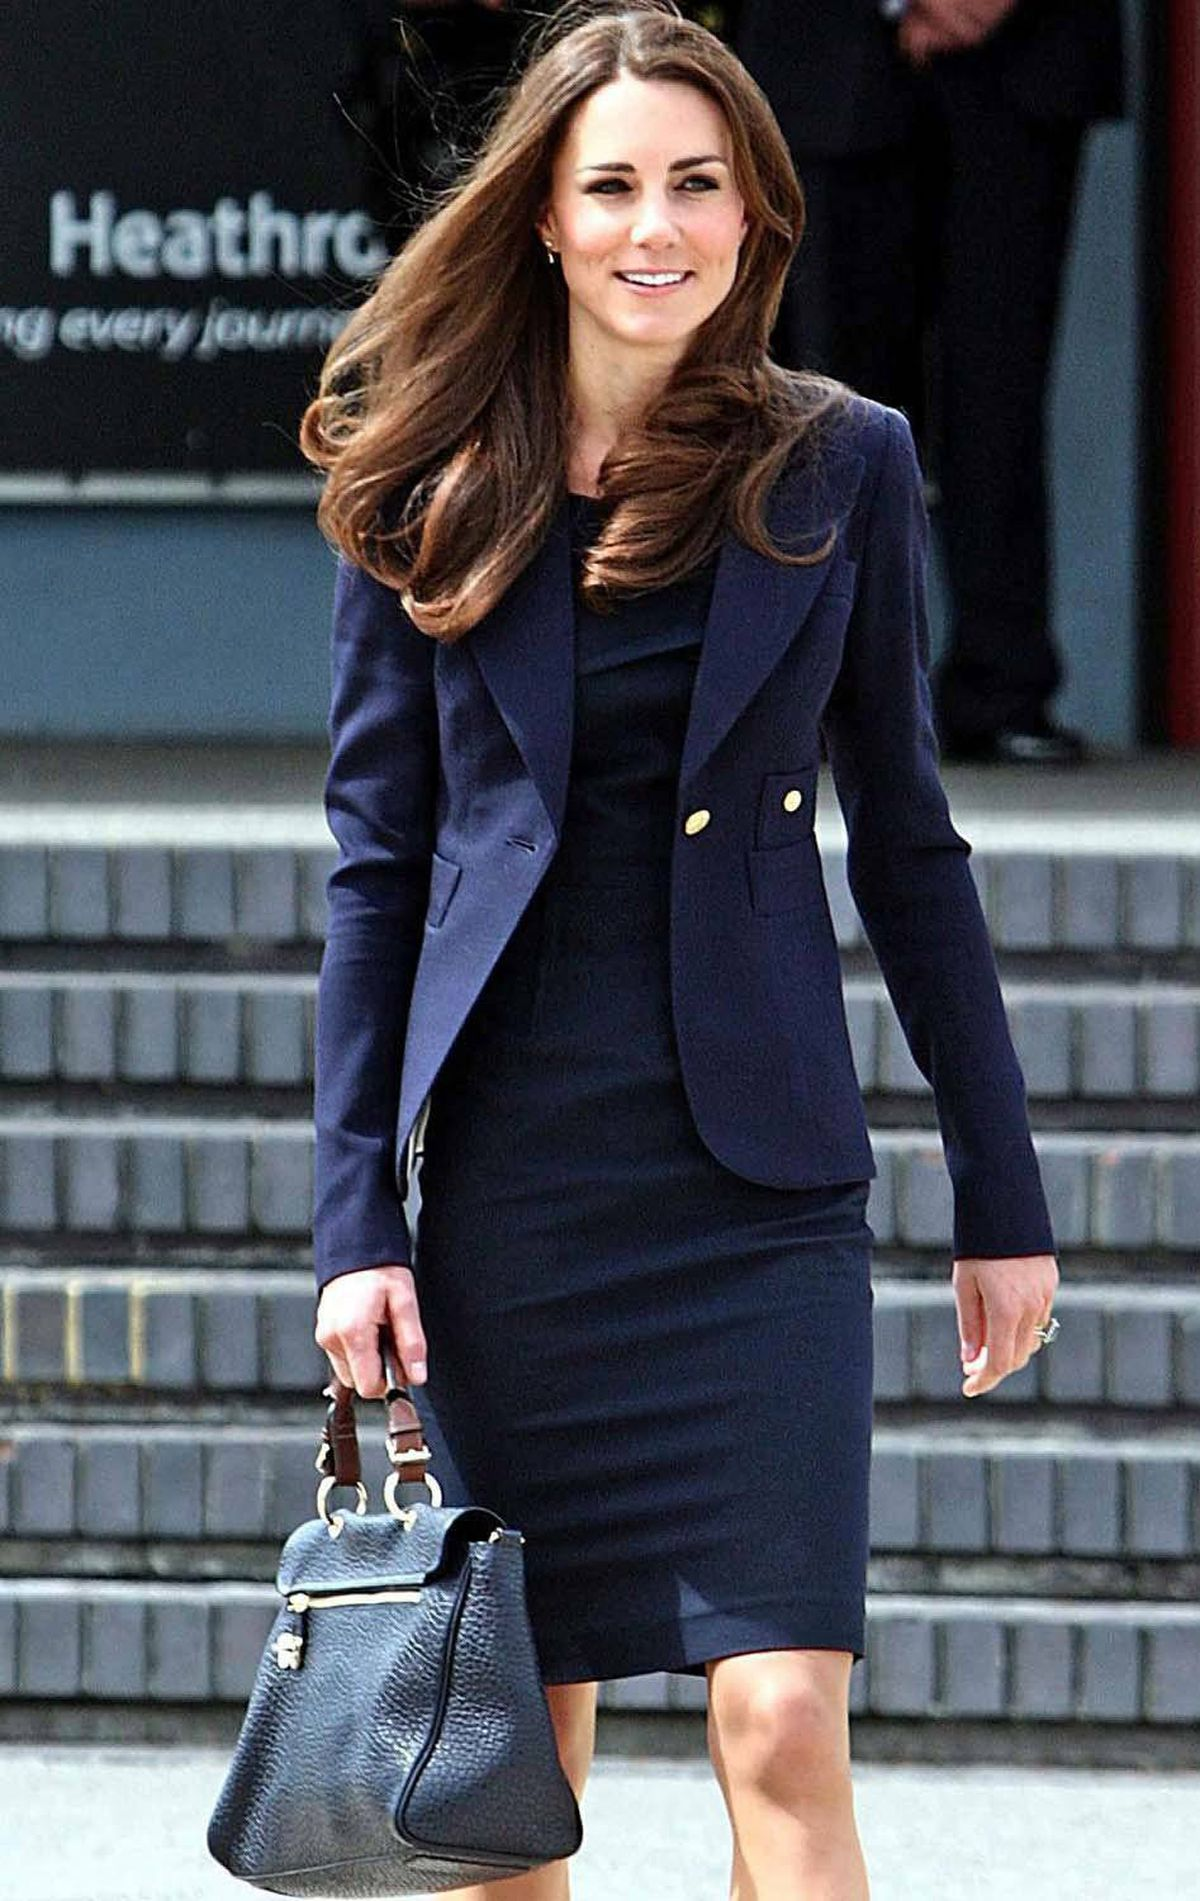 The newlywed leaves London's Heathrow Airport on June 30 in a business-like navy Roland Mouret dress.